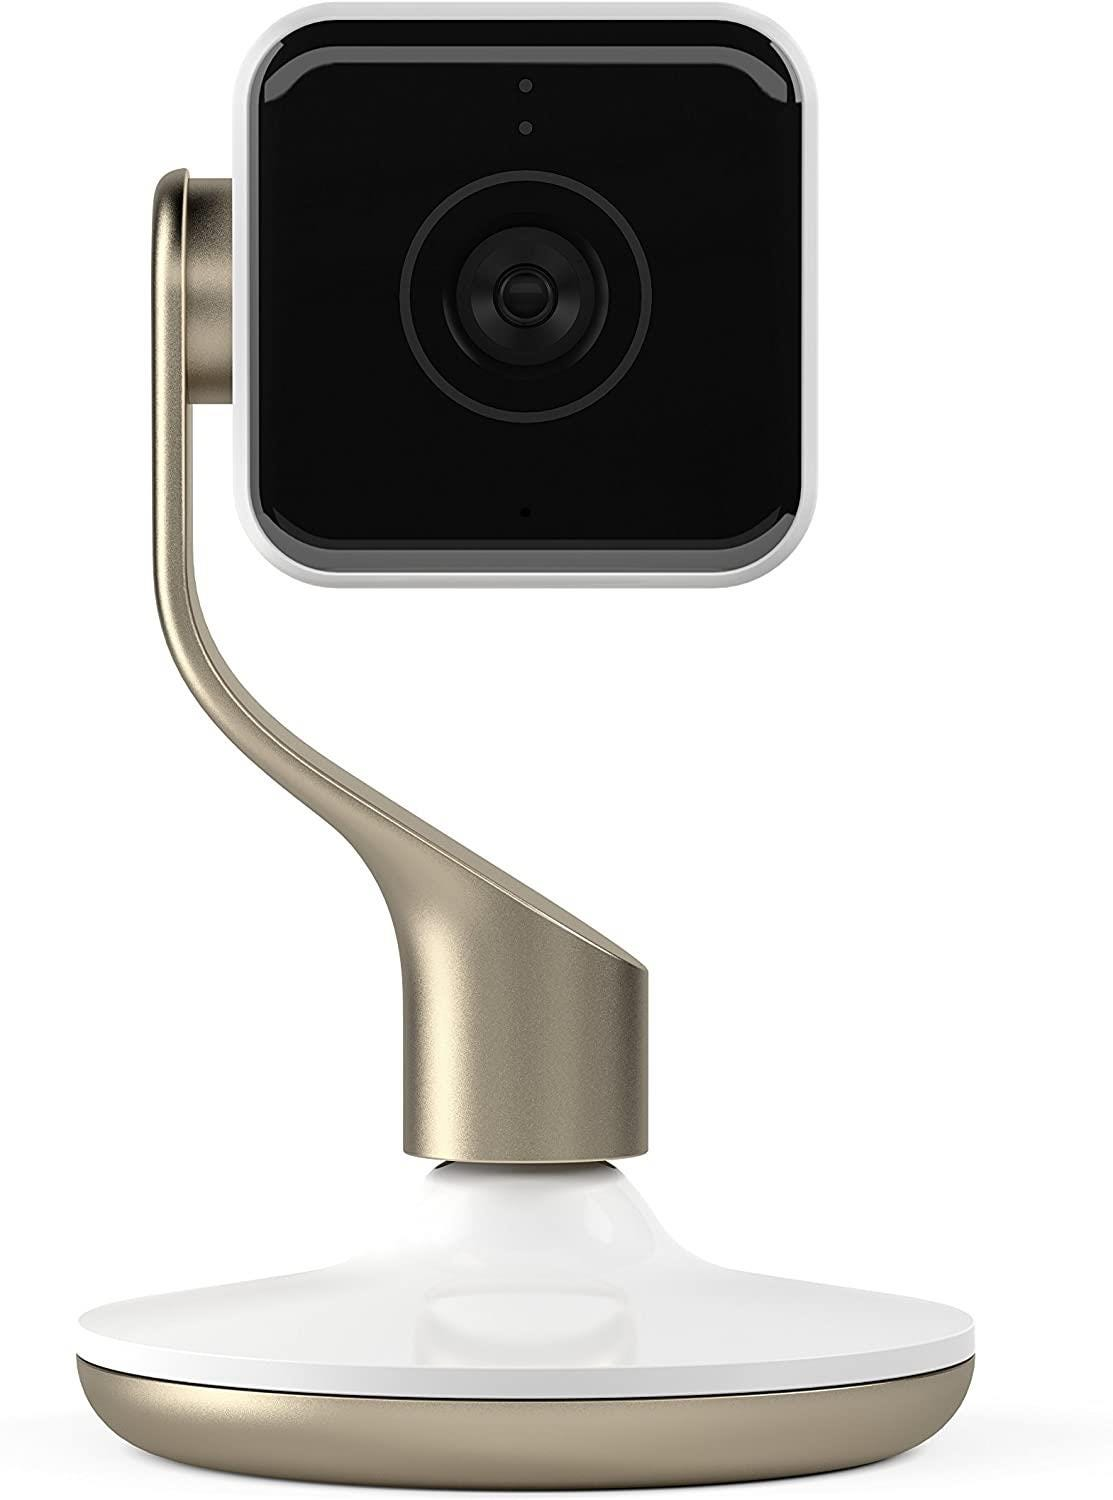 Hive View Indoor Wireless Full HD Night-Vision Security Camera - White    Champagne Gold